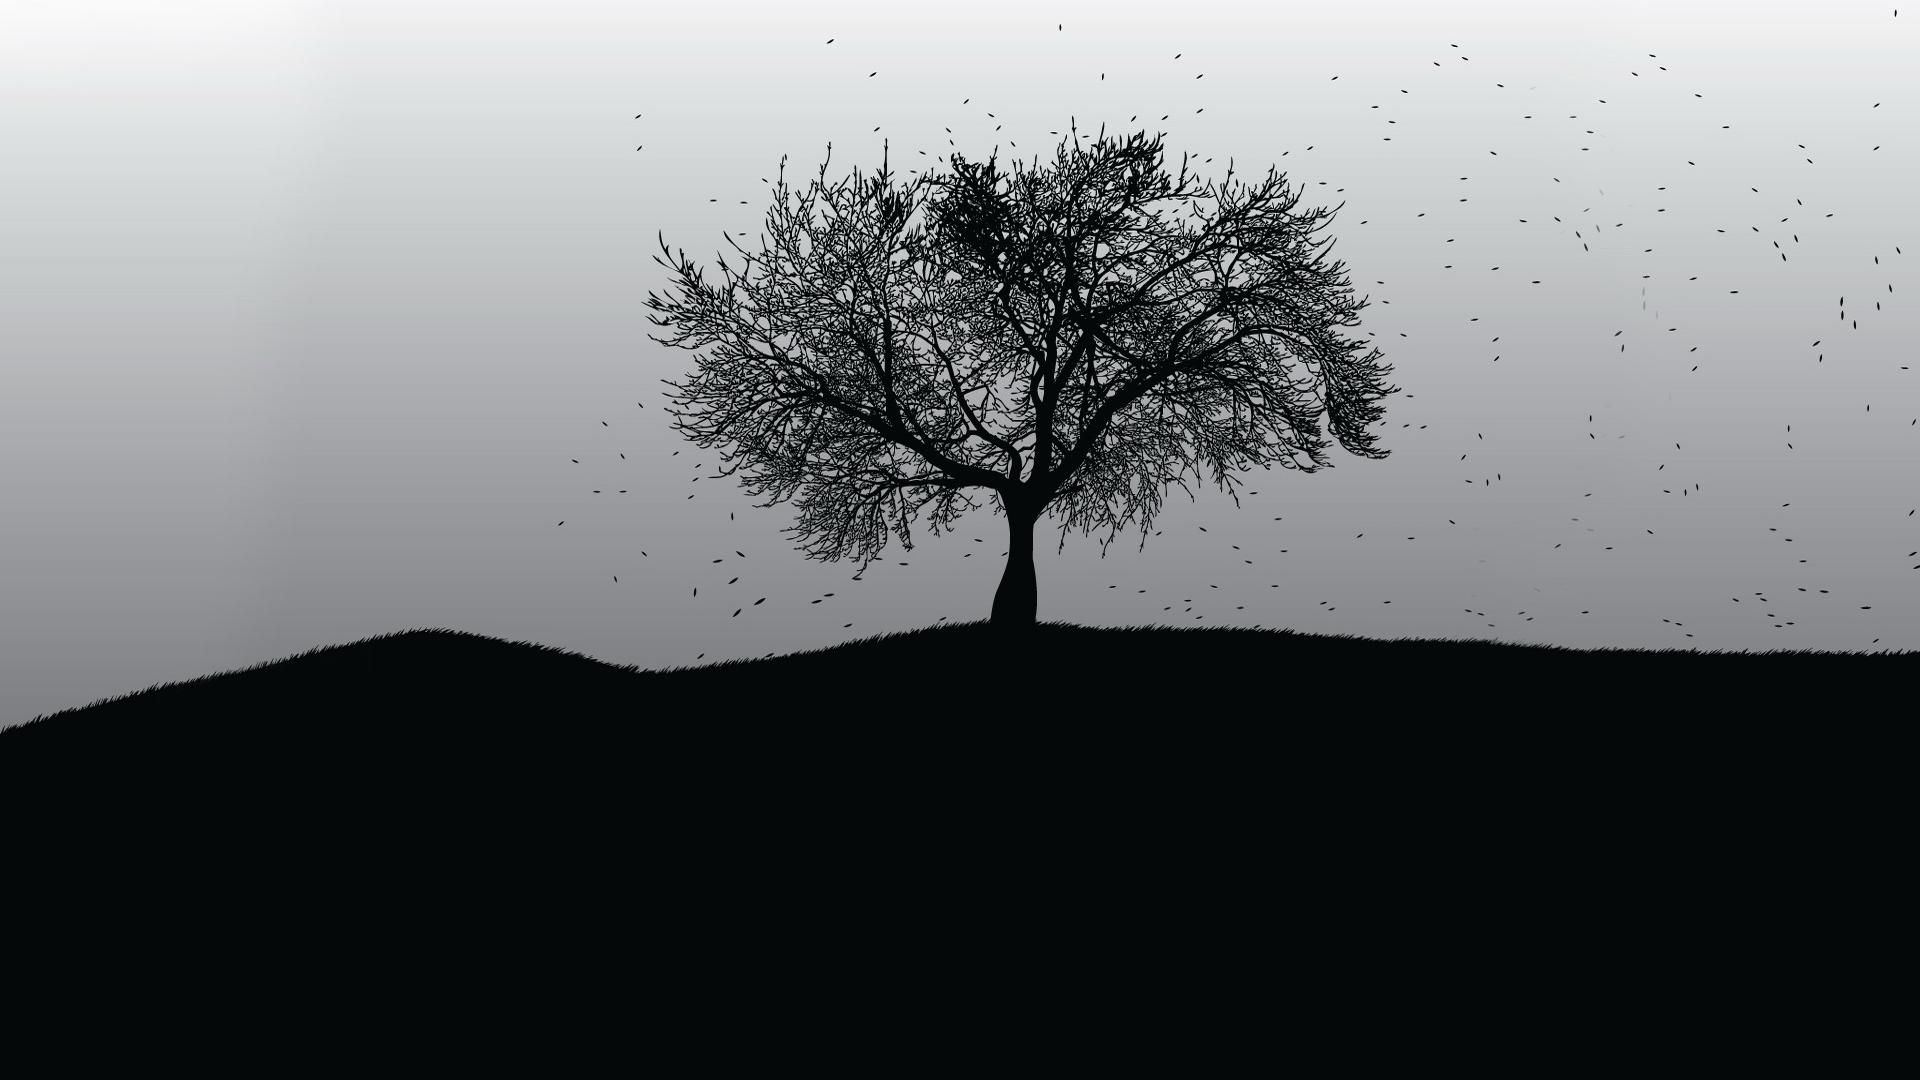 Tree Black And White Wallpaper Hd Resolution Iht Black And White Tree Dark Wallpaper Black And White Wallpaper